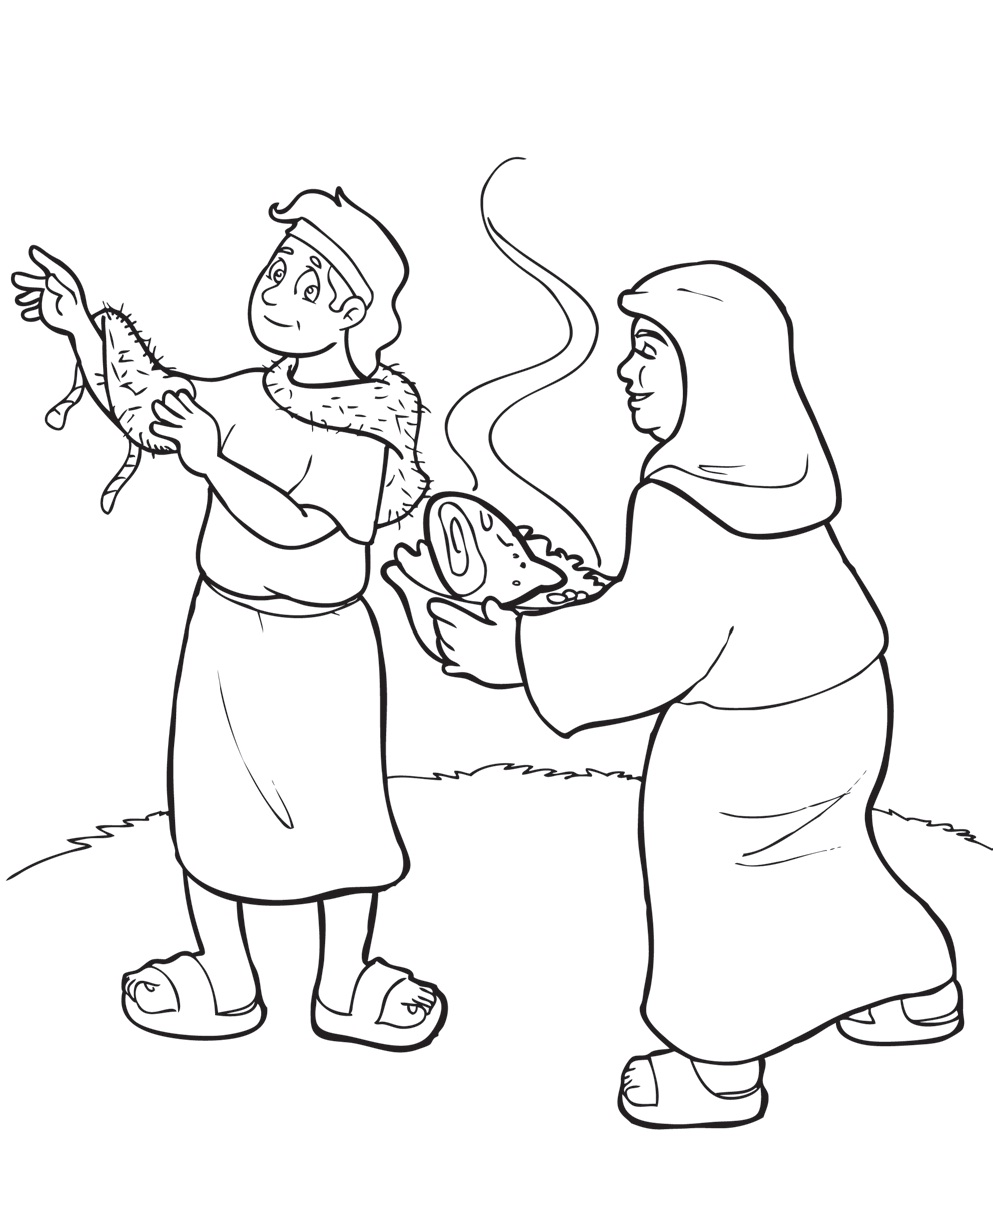 jacob meets esau coloring pages - photo#50